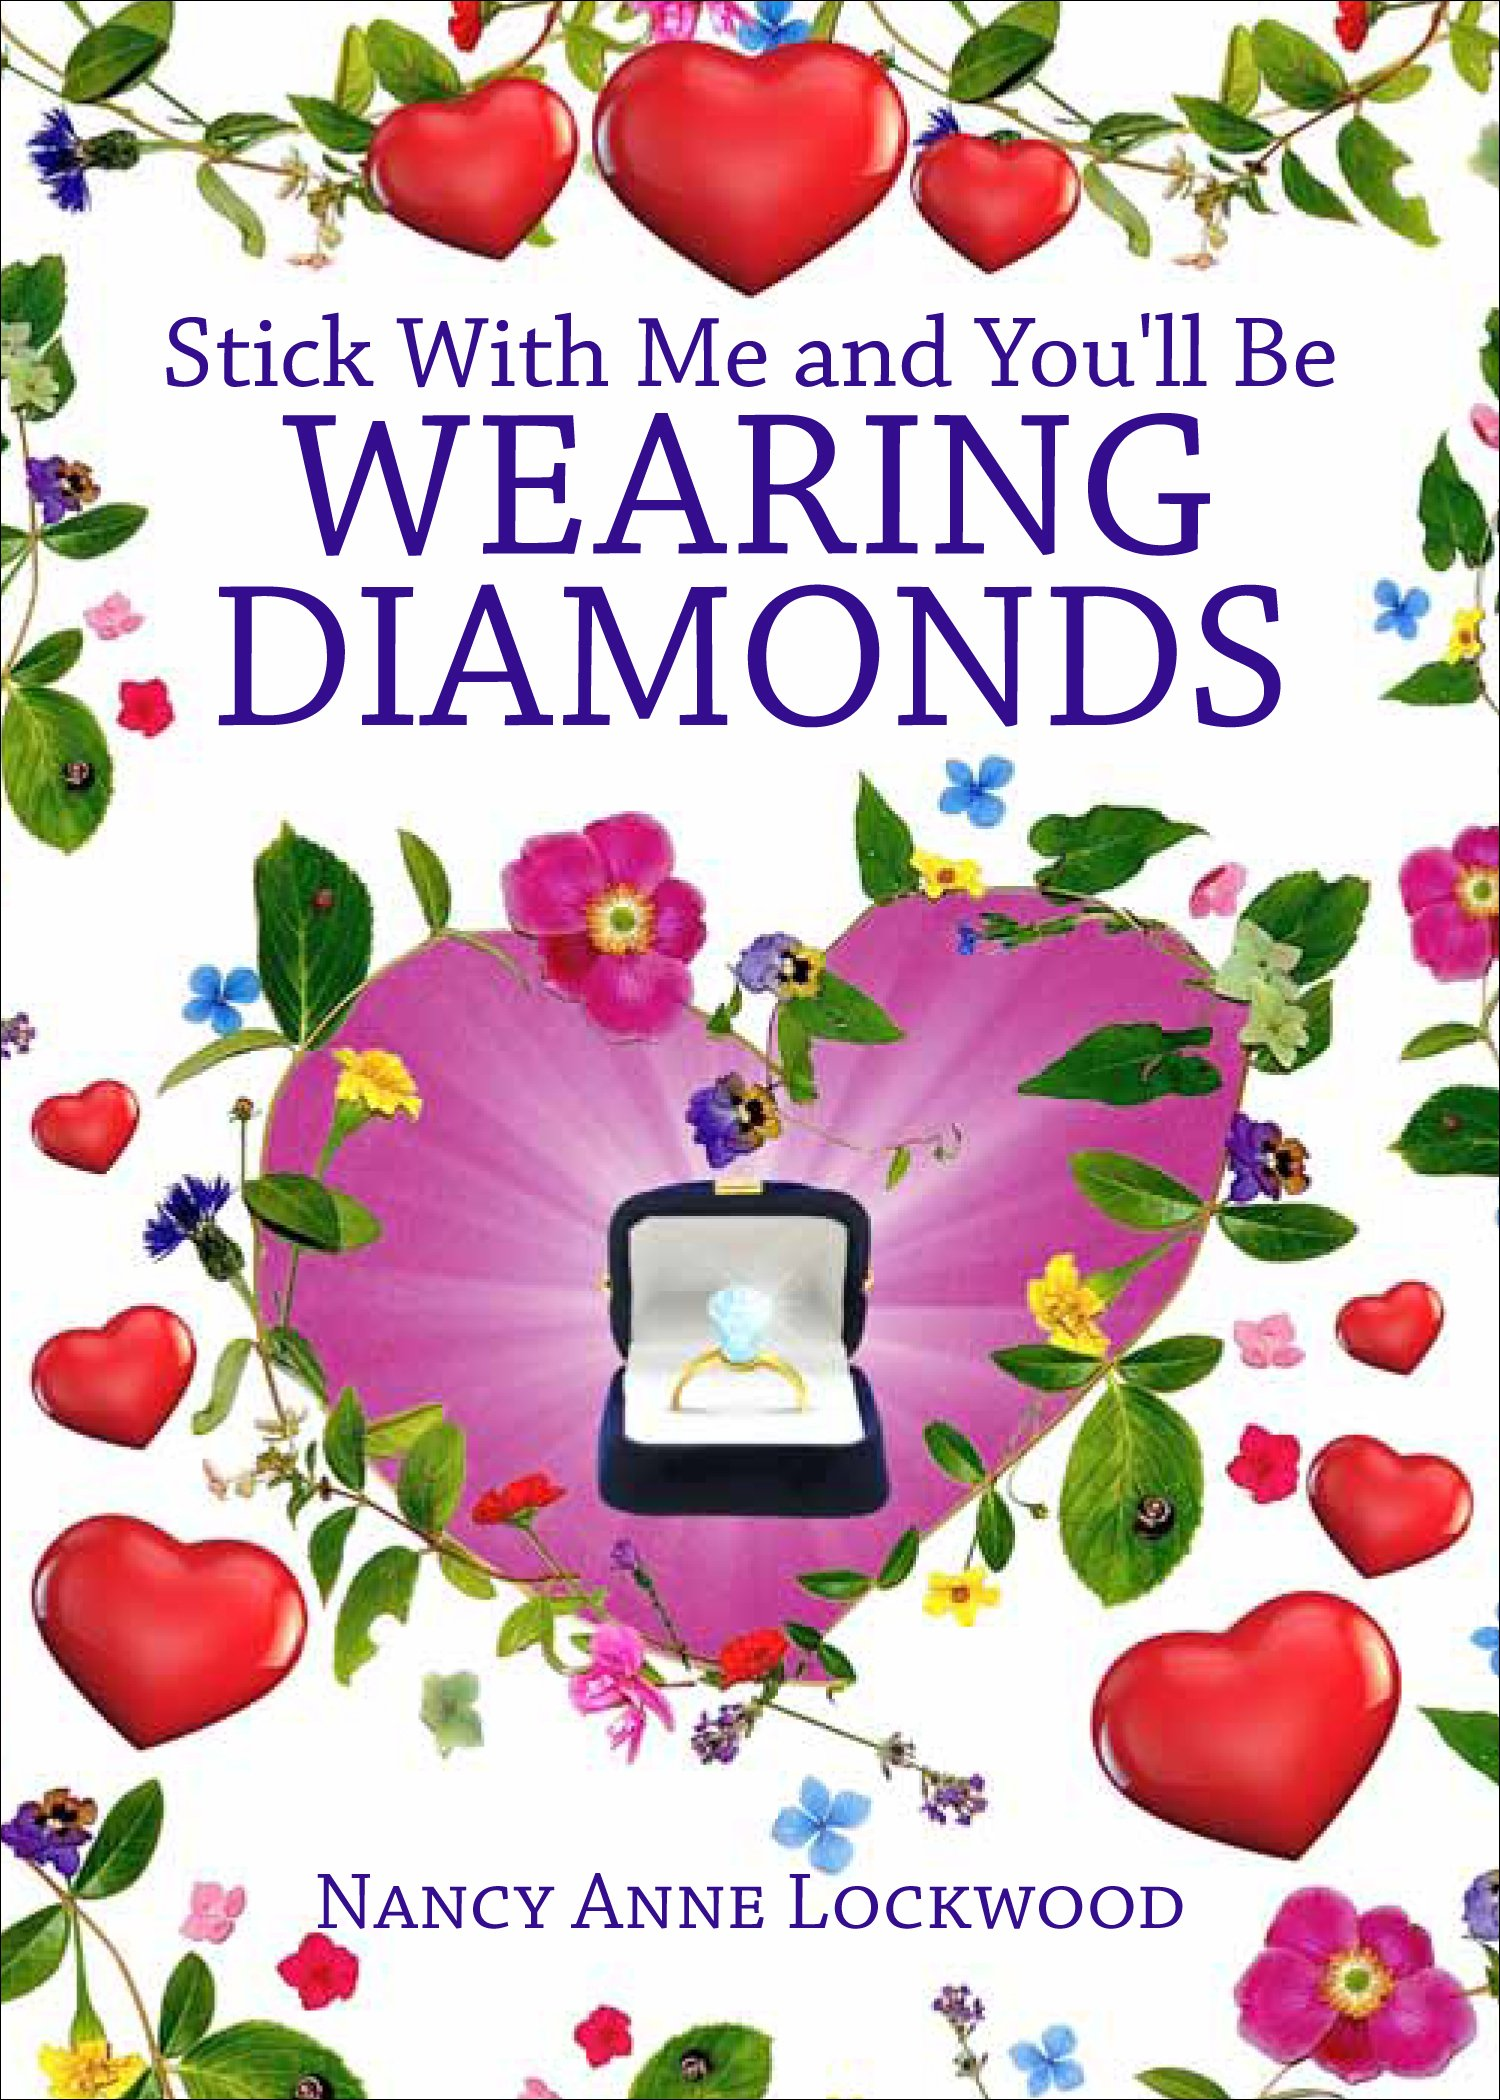 Download Stick With Me and You'll Be Wearing Diamonds PDF ePub fb2 book